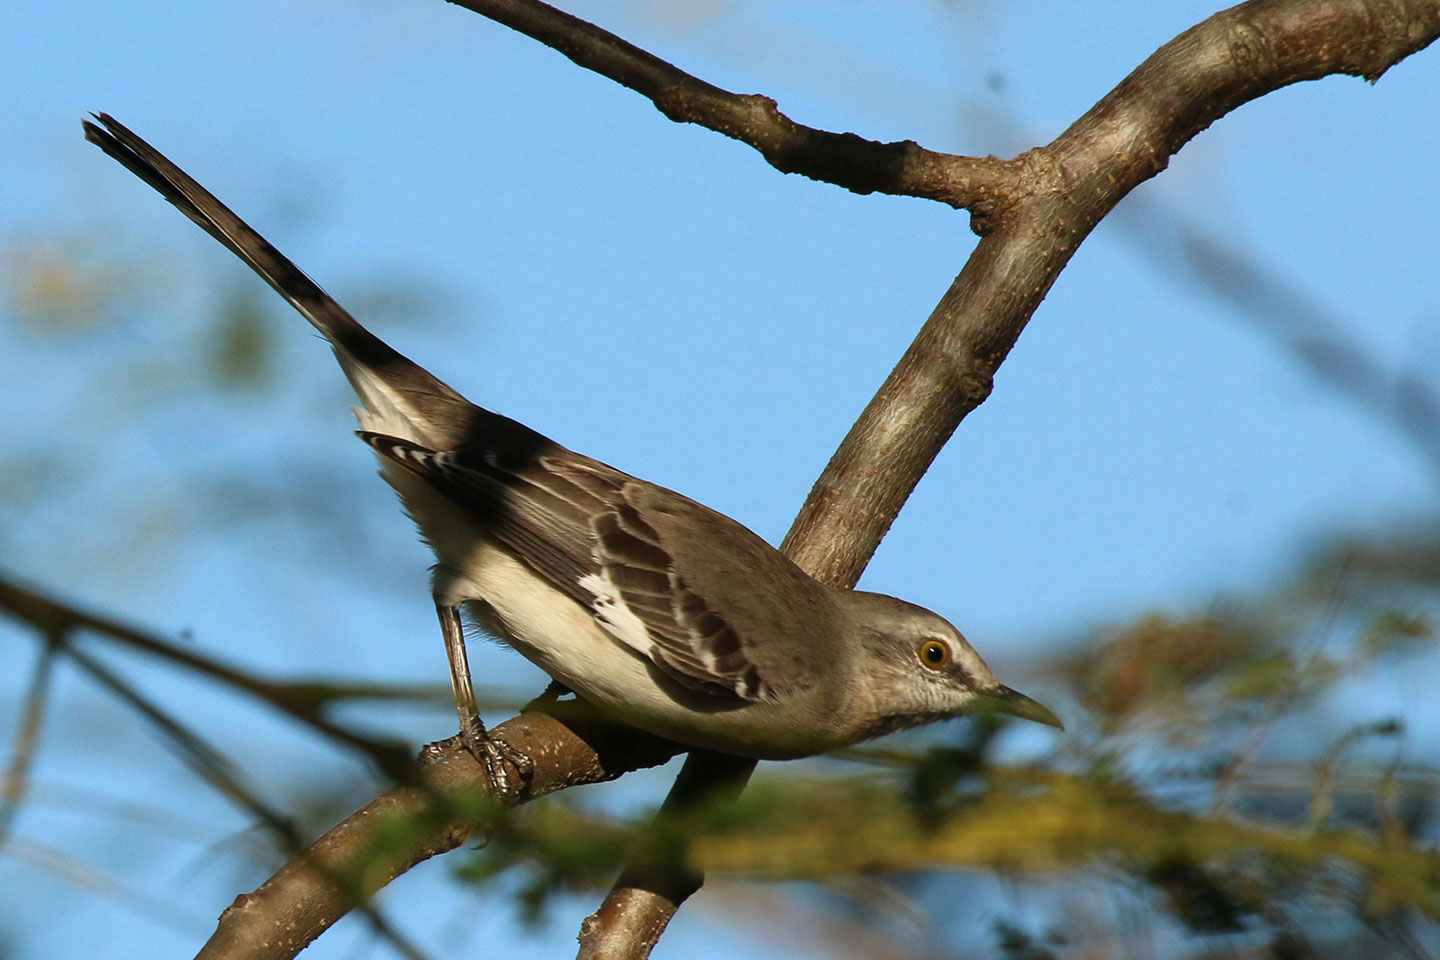 A mockingbird on a tree branch